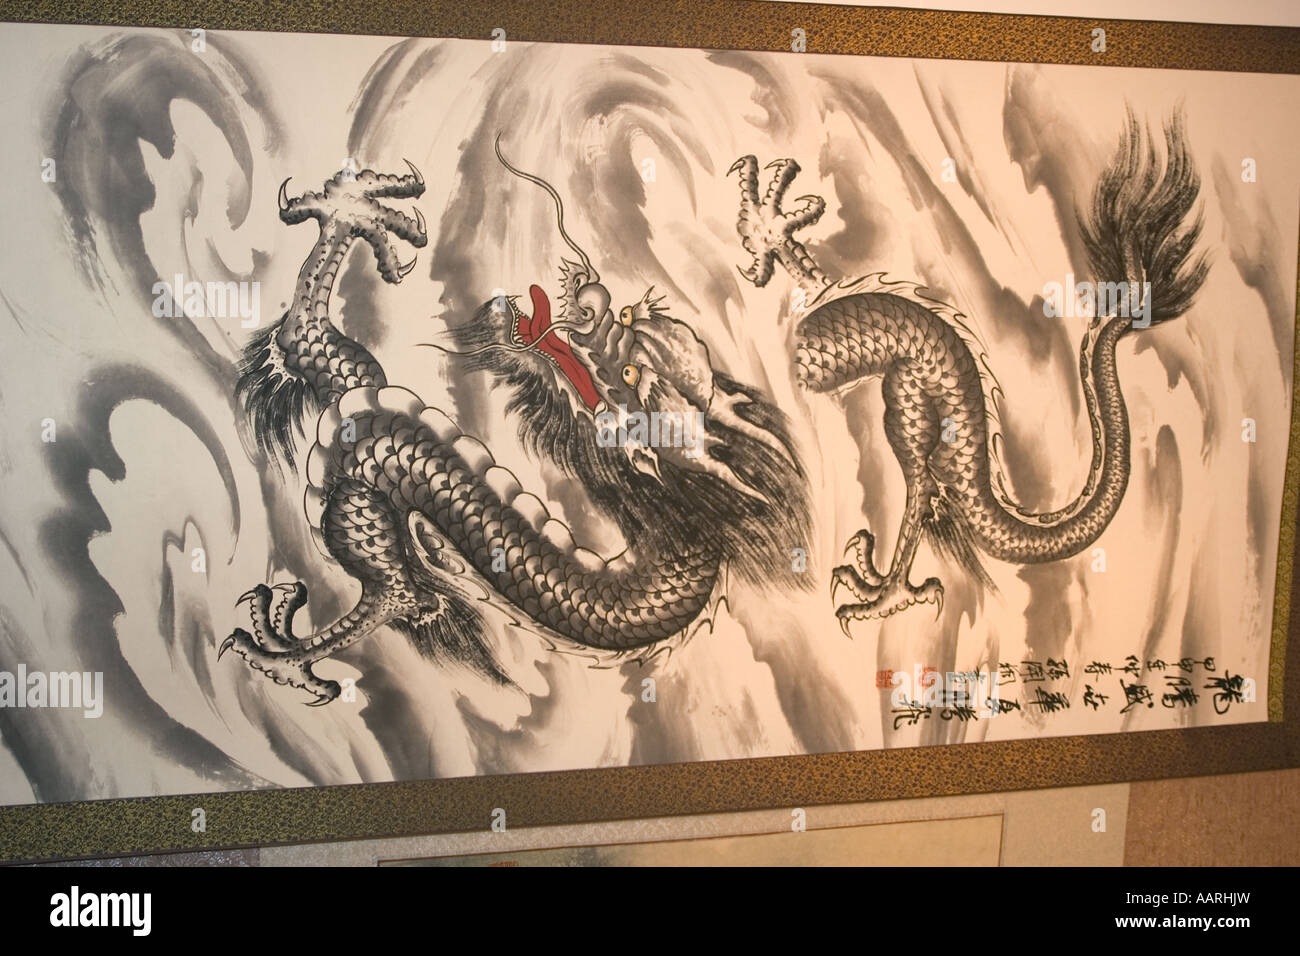 Traditional Chinese drawings Beijing China - Stock Image